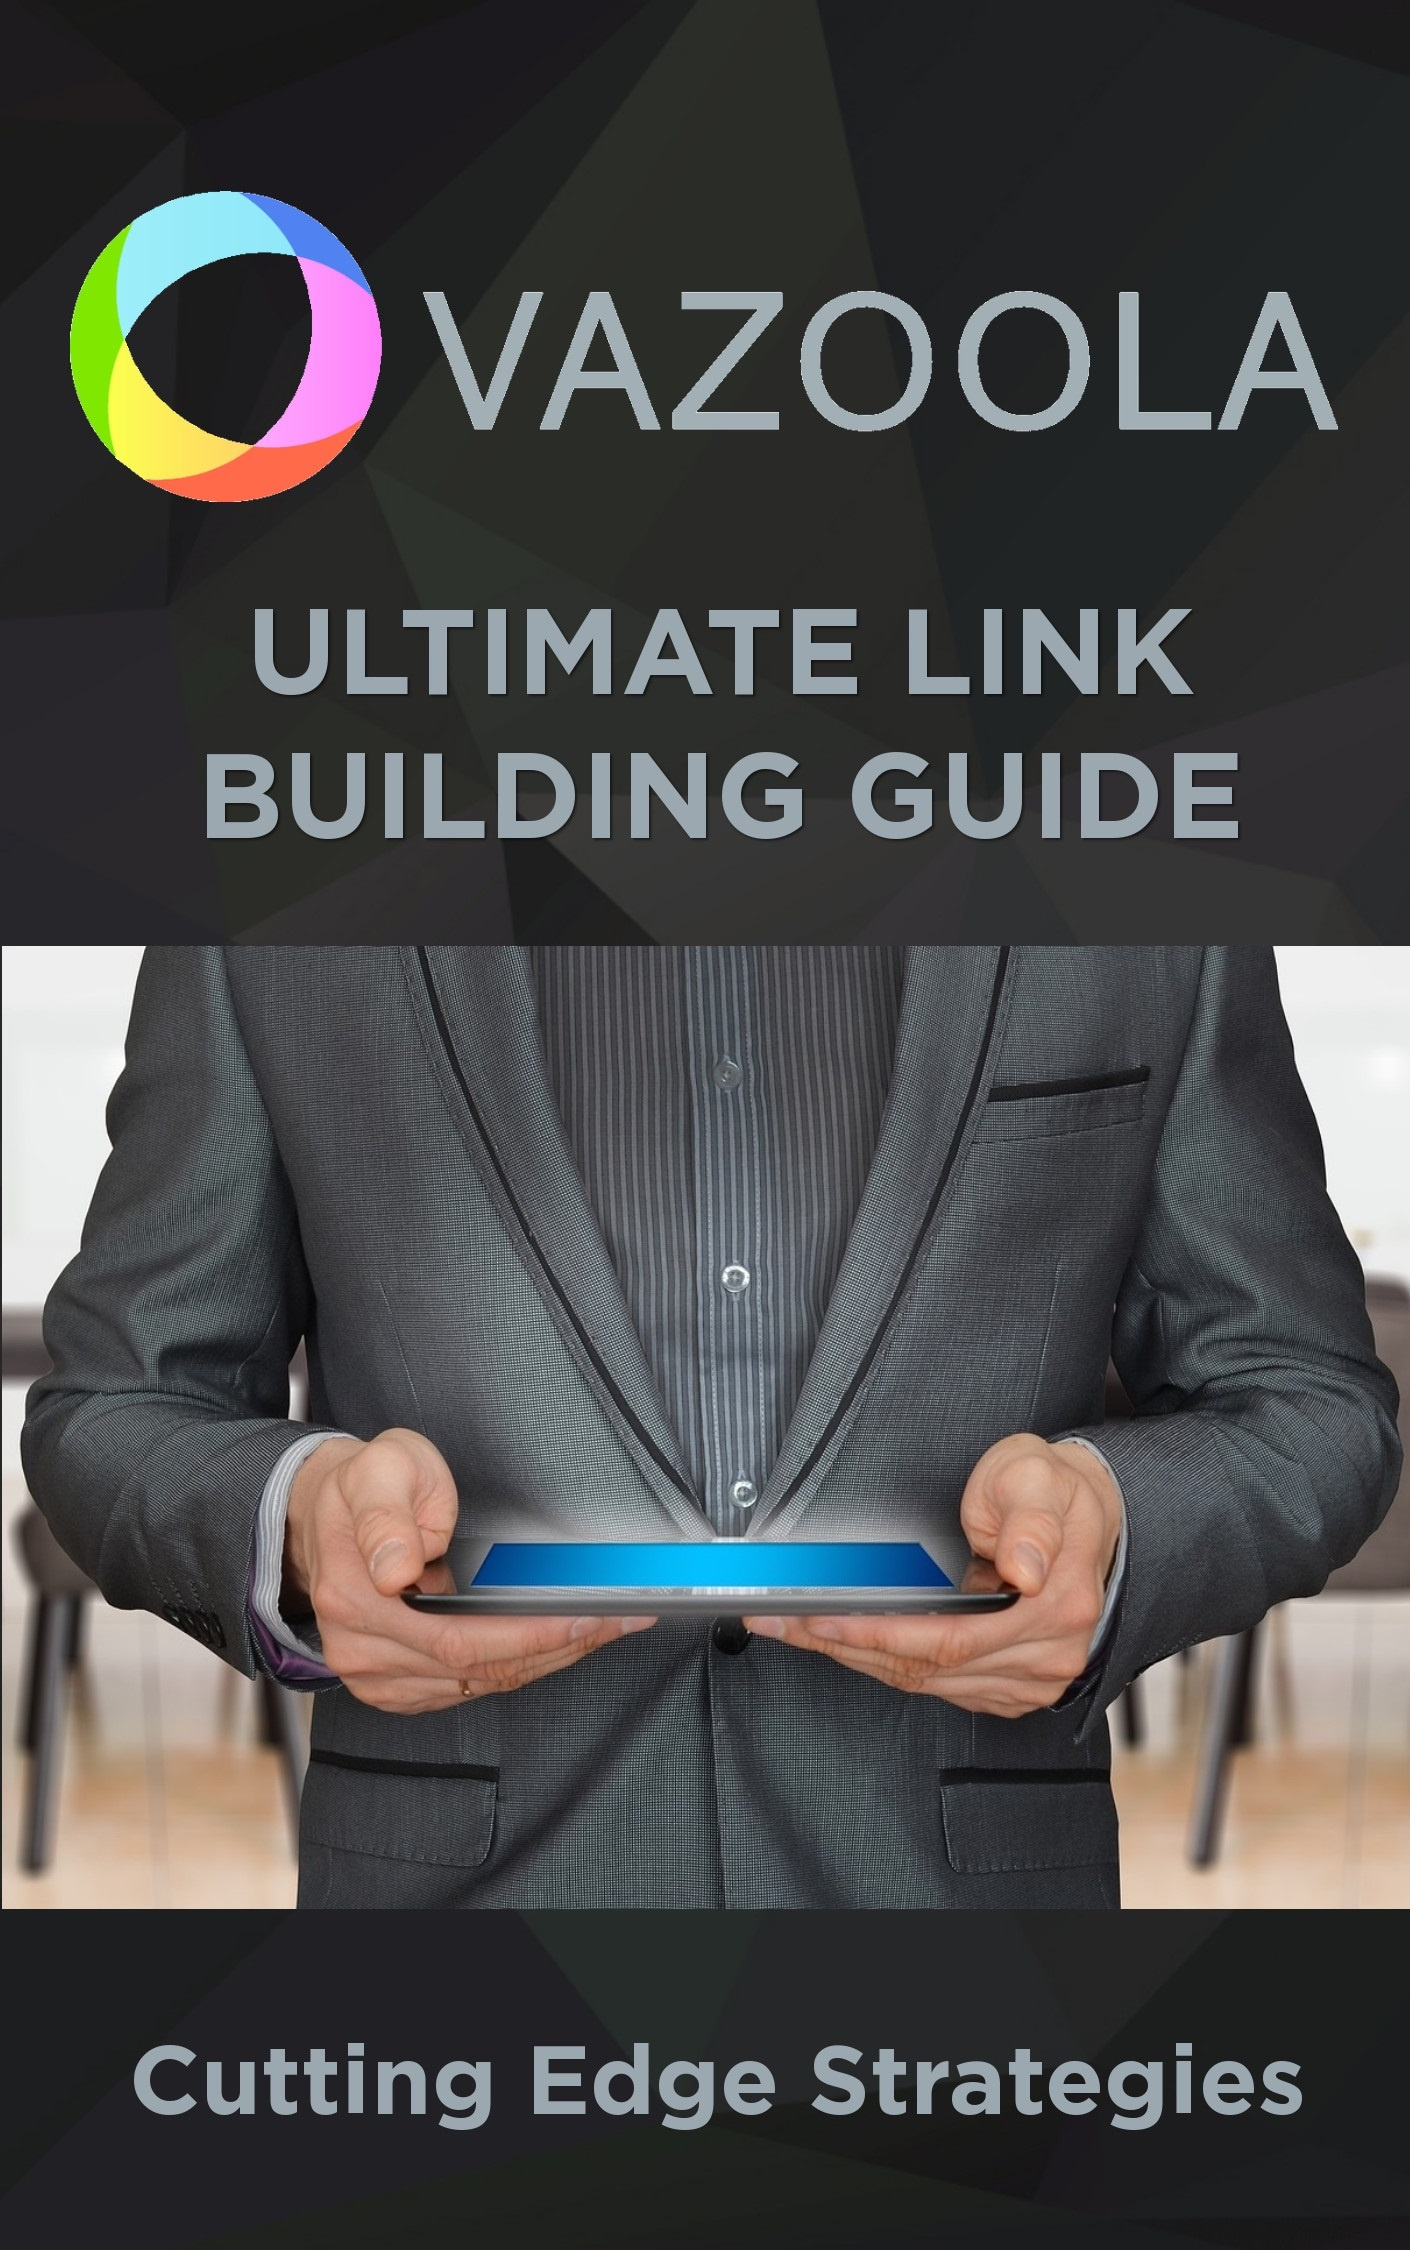 ULTIMATE-LINK-BUILDING-GUIDE-ebook-cover-1